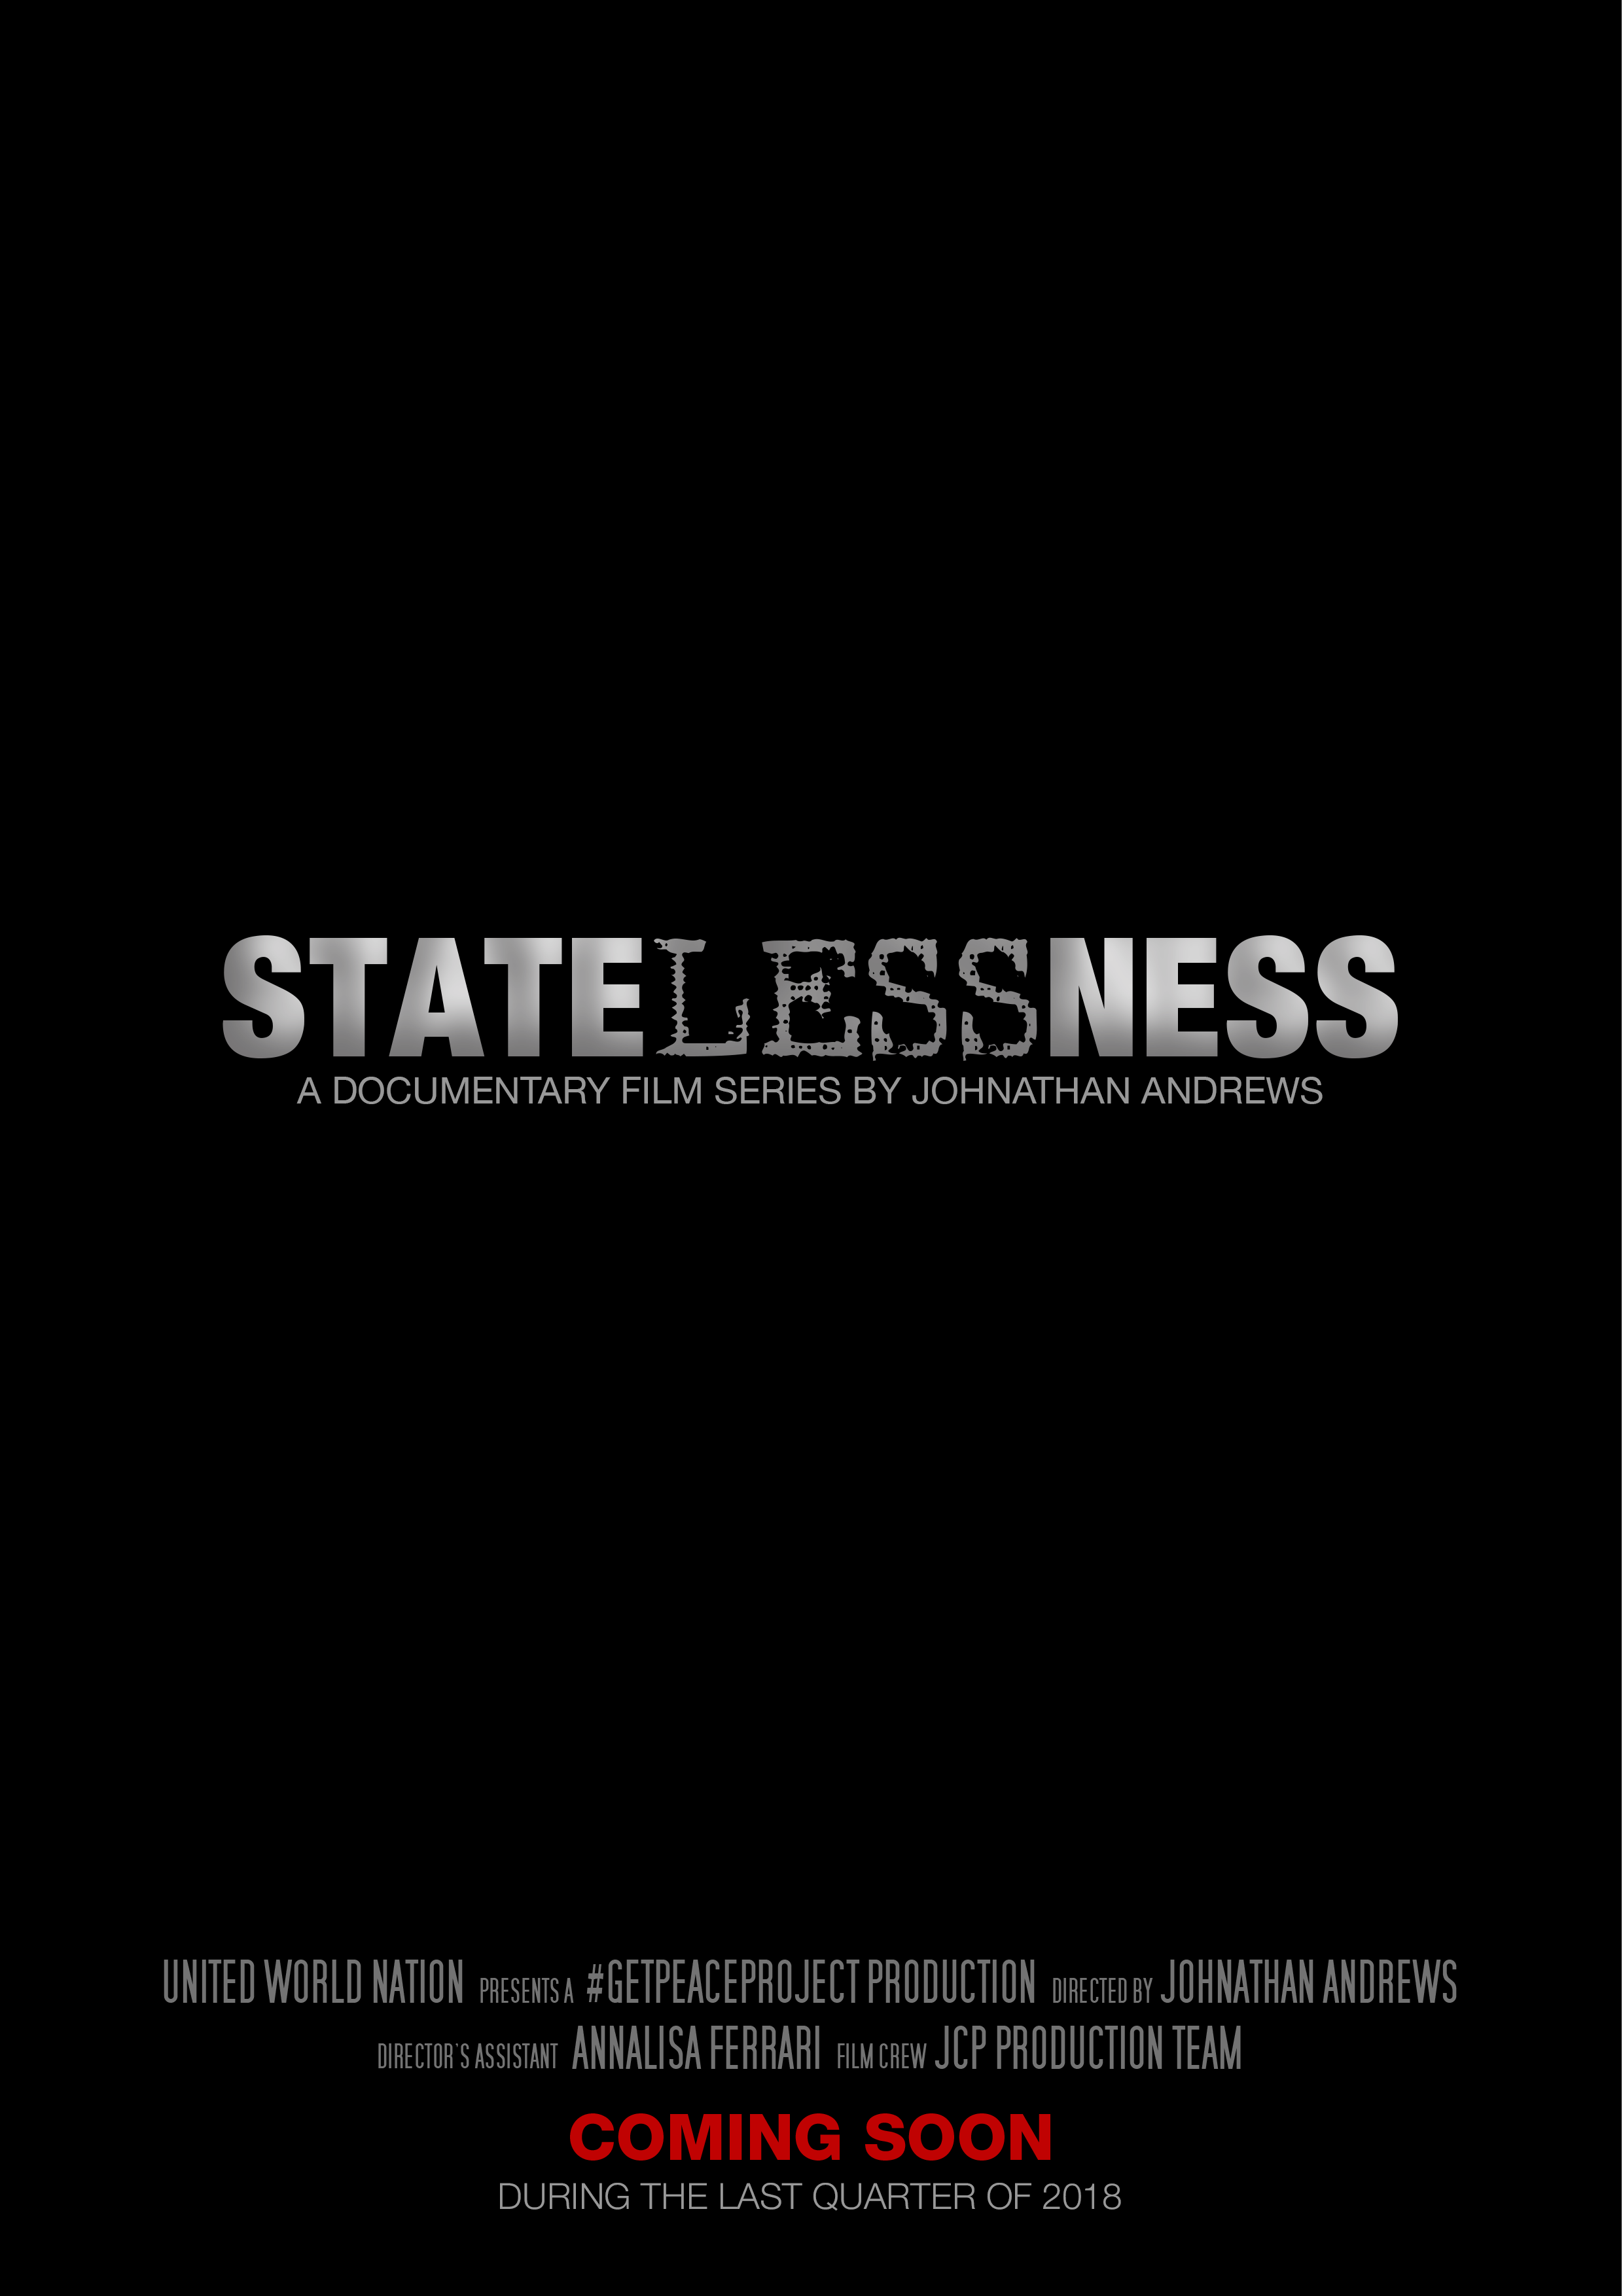 Statelessness Documentary Film Series By Johnathan Andrews